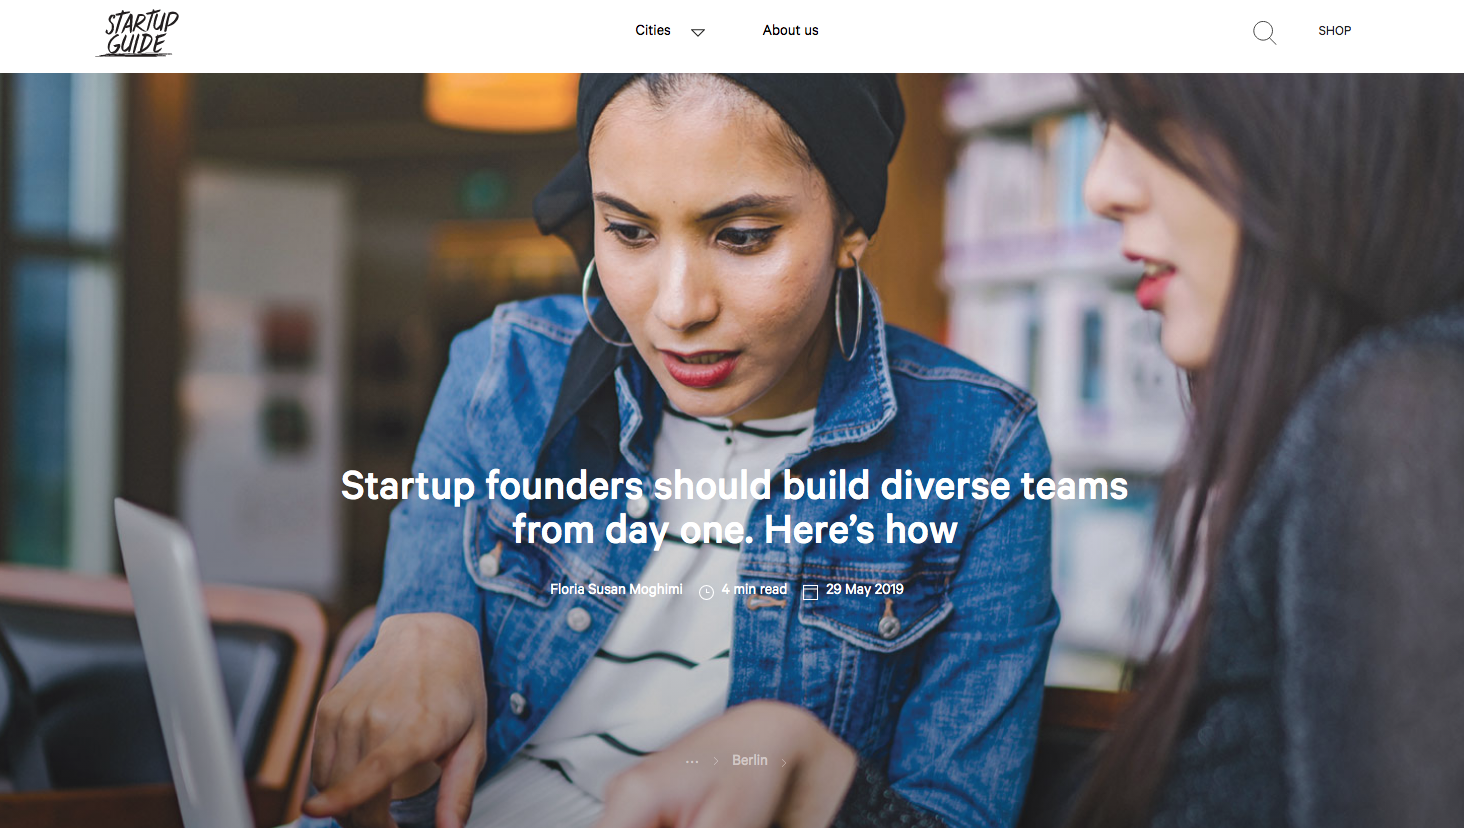 Schwarze Frau mit Hijab, darauf Text: Startup founders should build diverse teams from day 1.